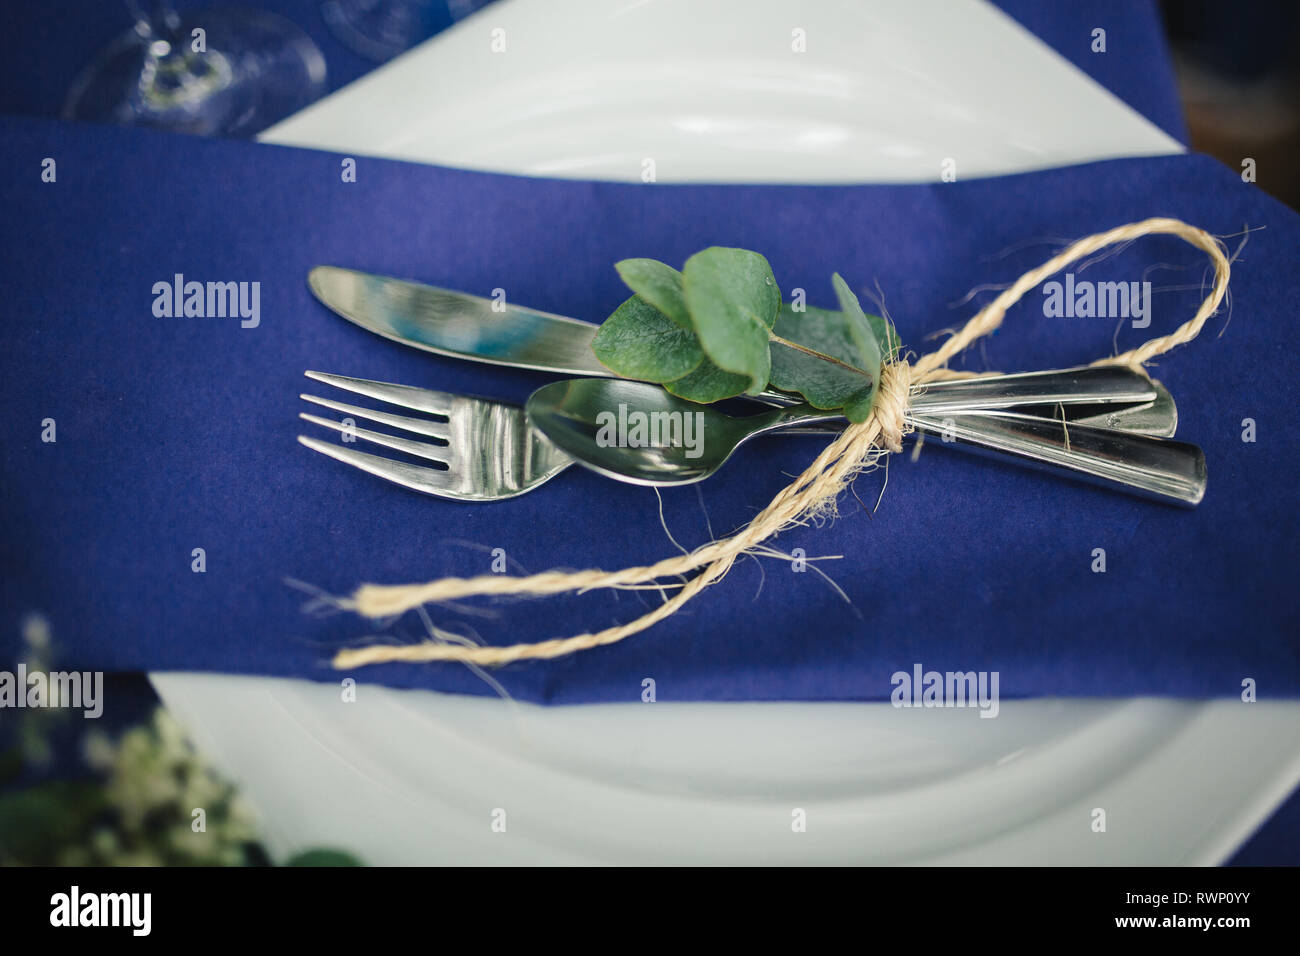 Details Composition Wedding Decorations In Blue Tones On